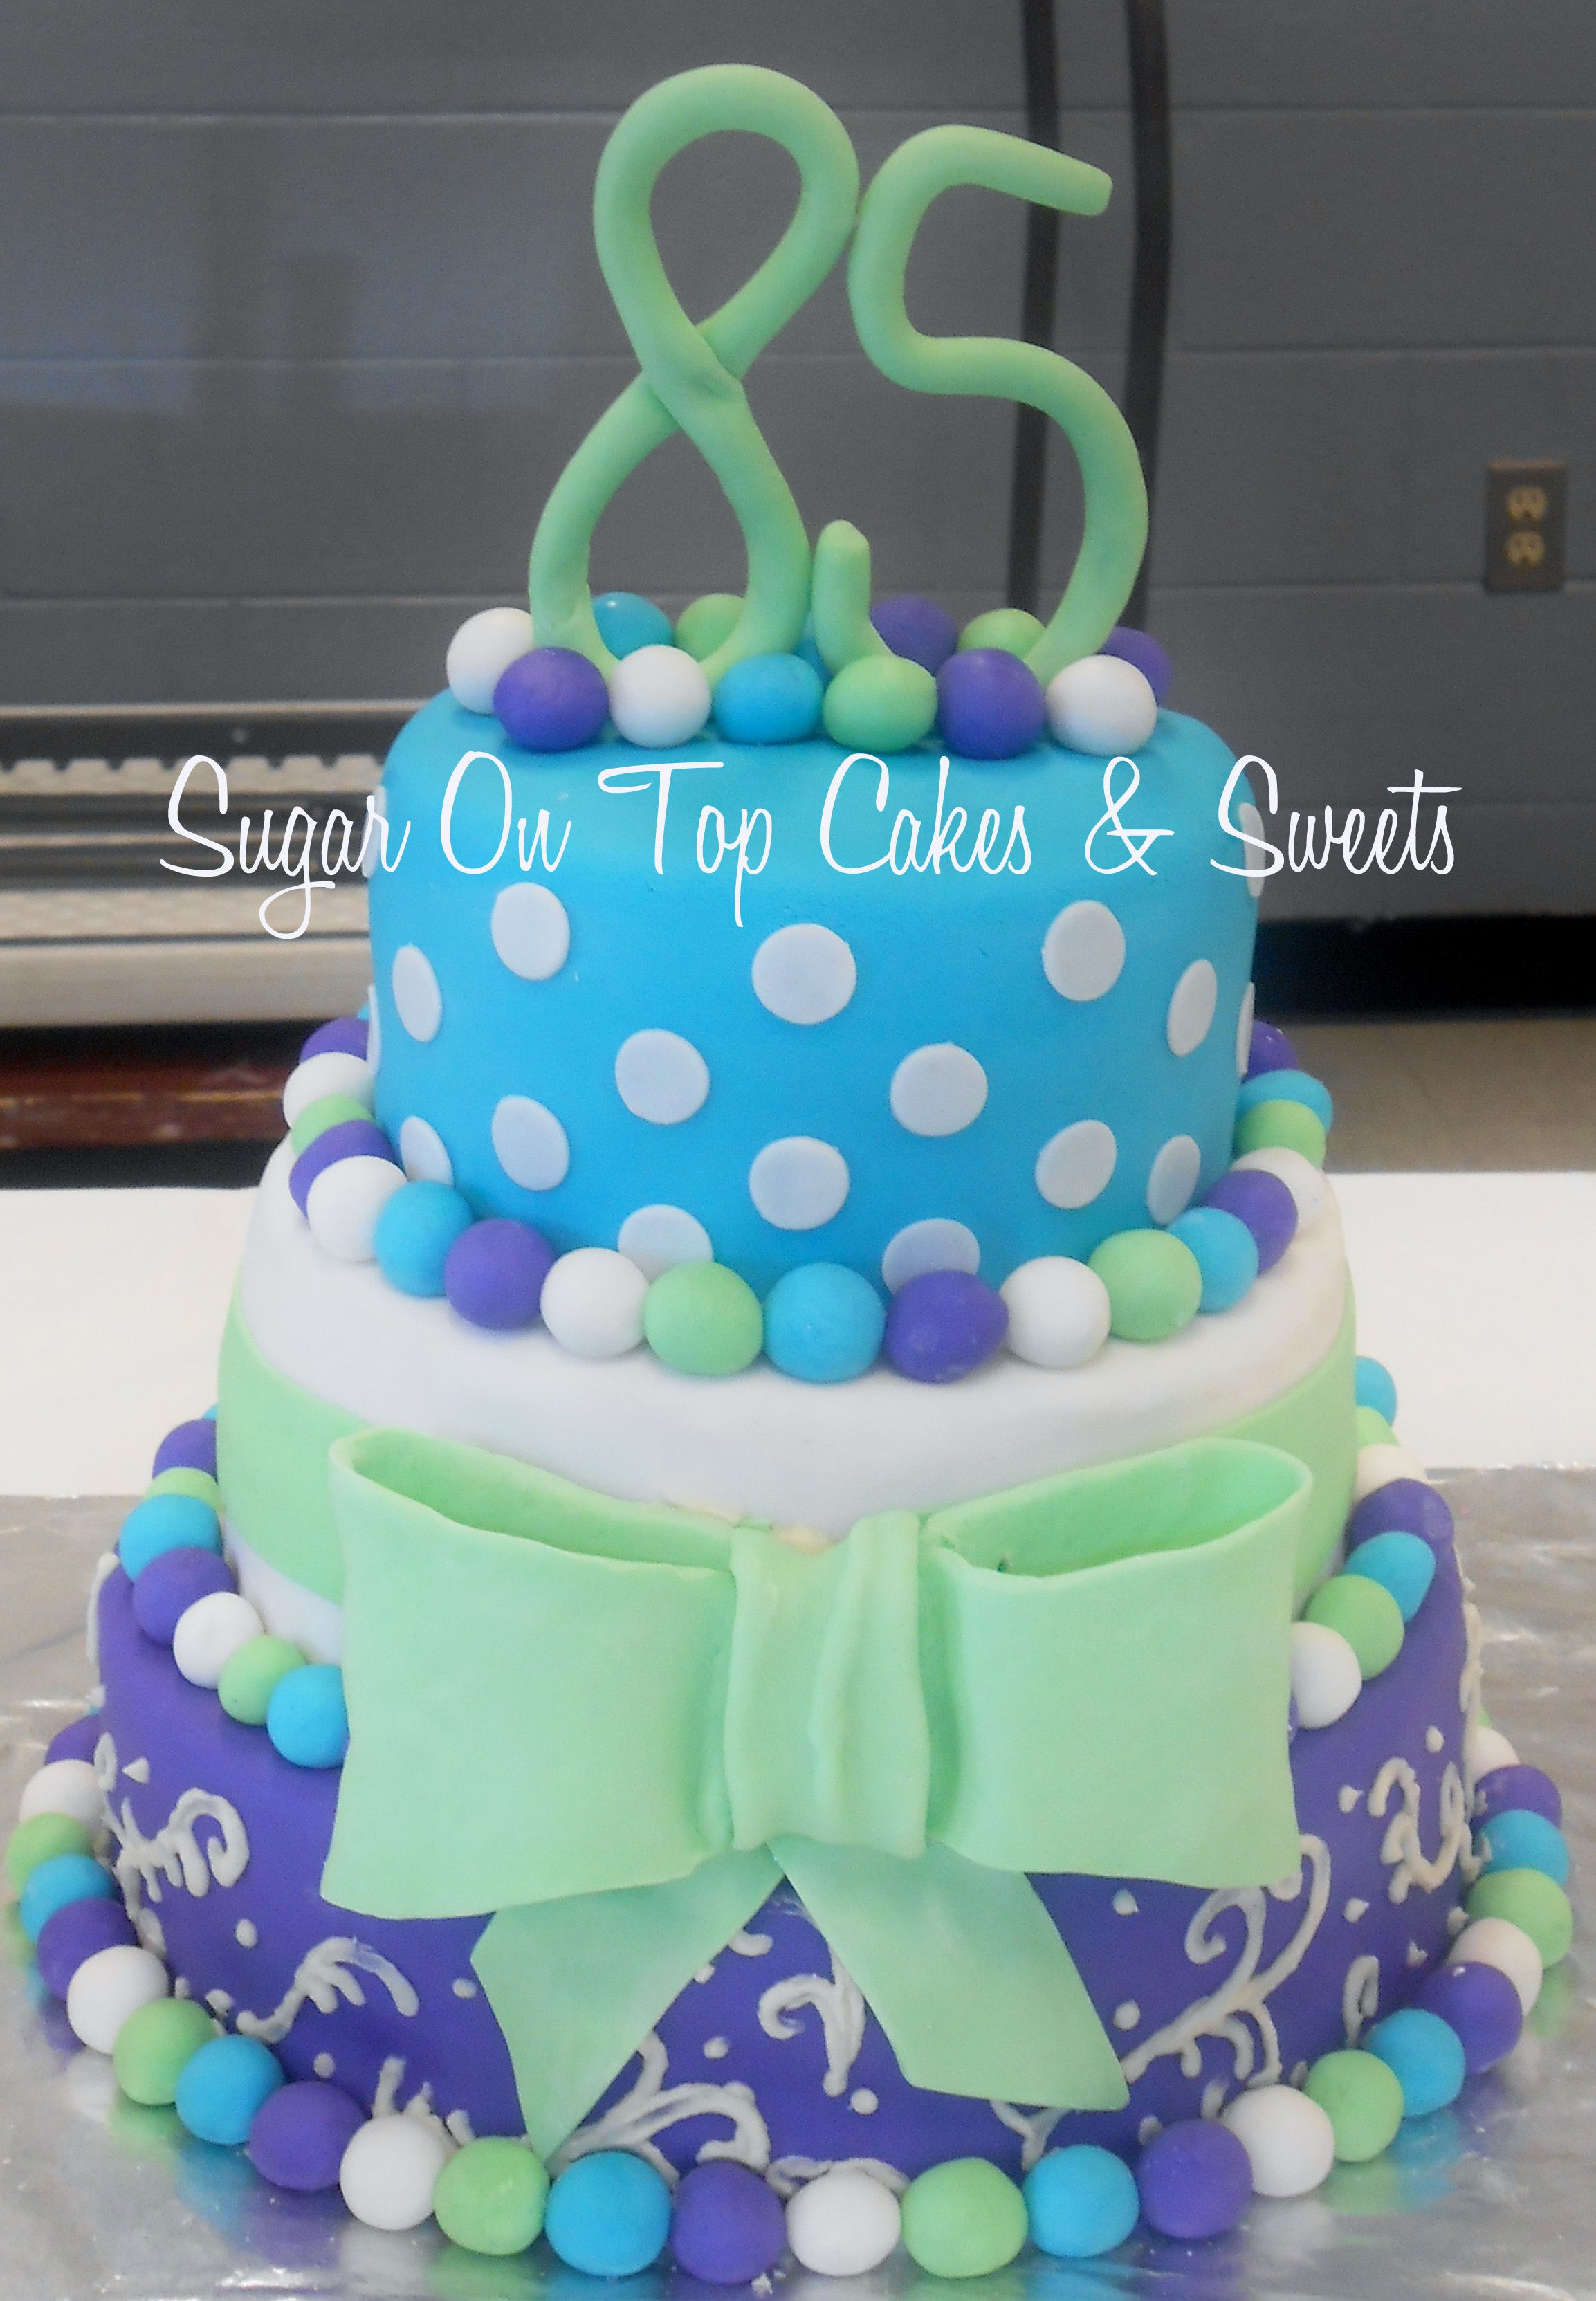 3 tier turquoise green and purple birthday cake with polka dots